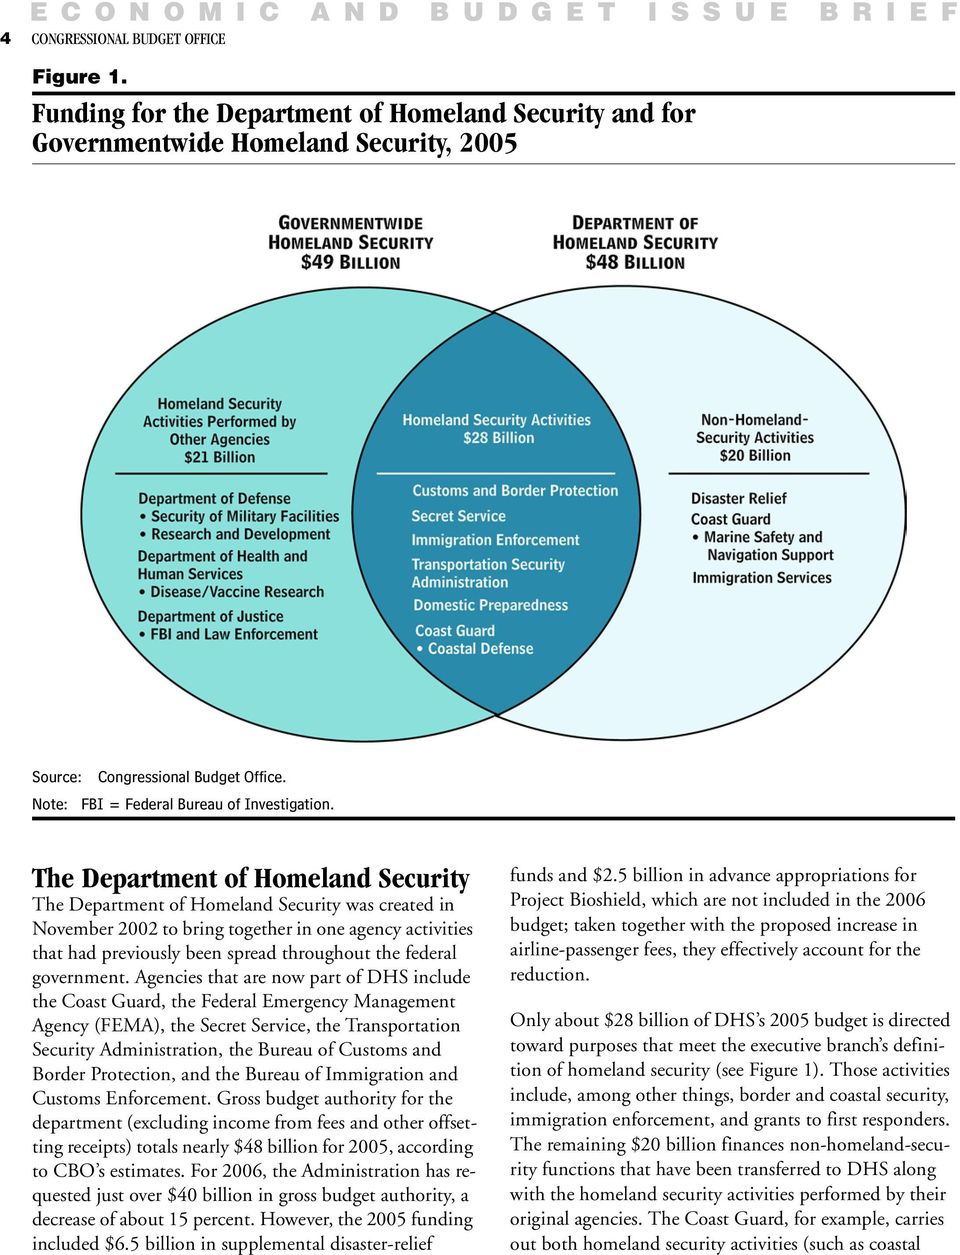 The Department of Homeland Security The Department of Homeland Security was created in November 2002 to bring together in one agency activities that had previously been spread throughout the federal